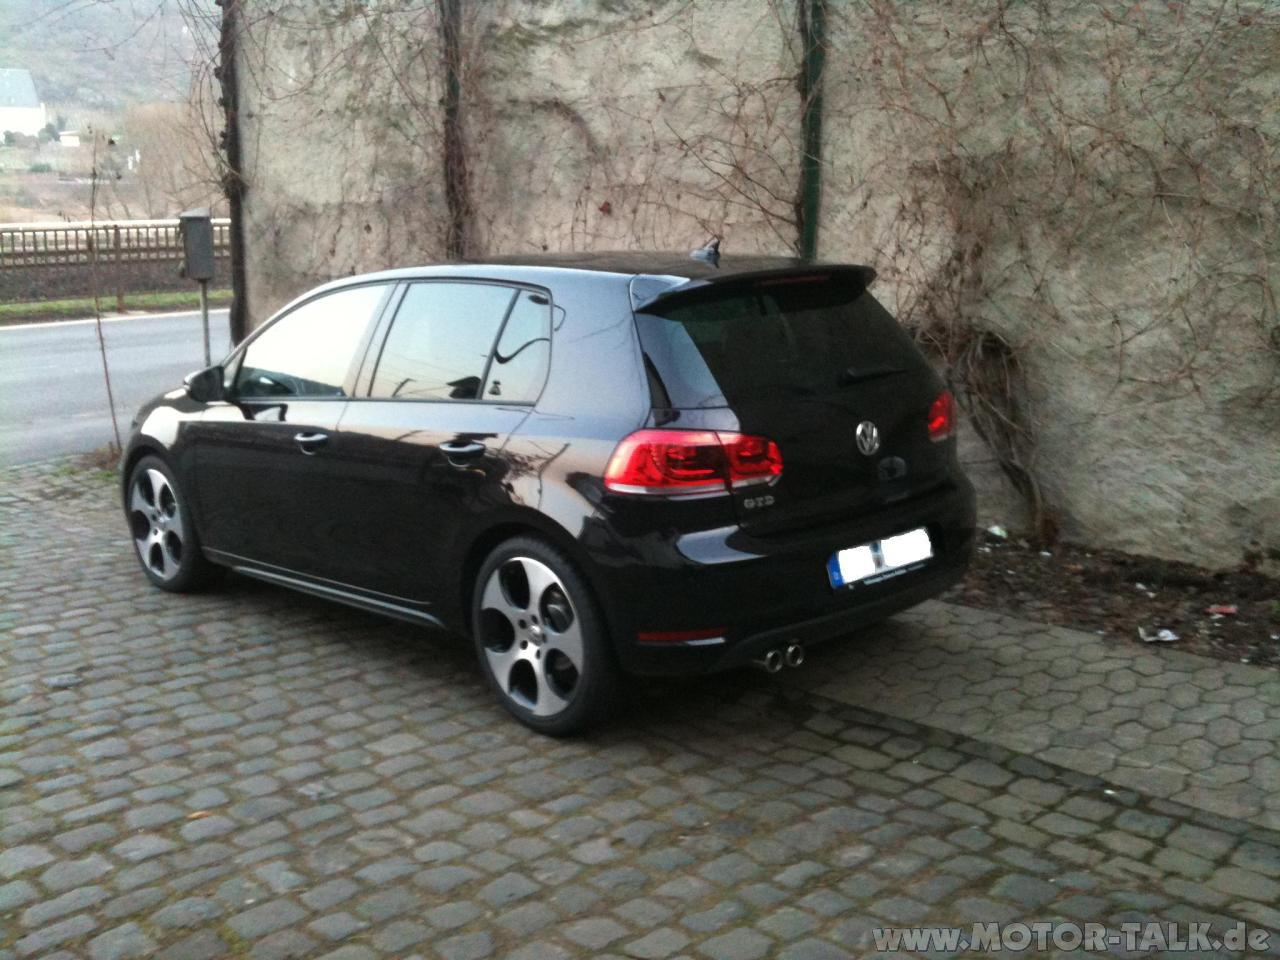 gtd forum welche felgen auf einen schwarzen golf 6 gtd vw golf 6 203787473. Black Bedroom Furniture Sets. Home Design Ideas